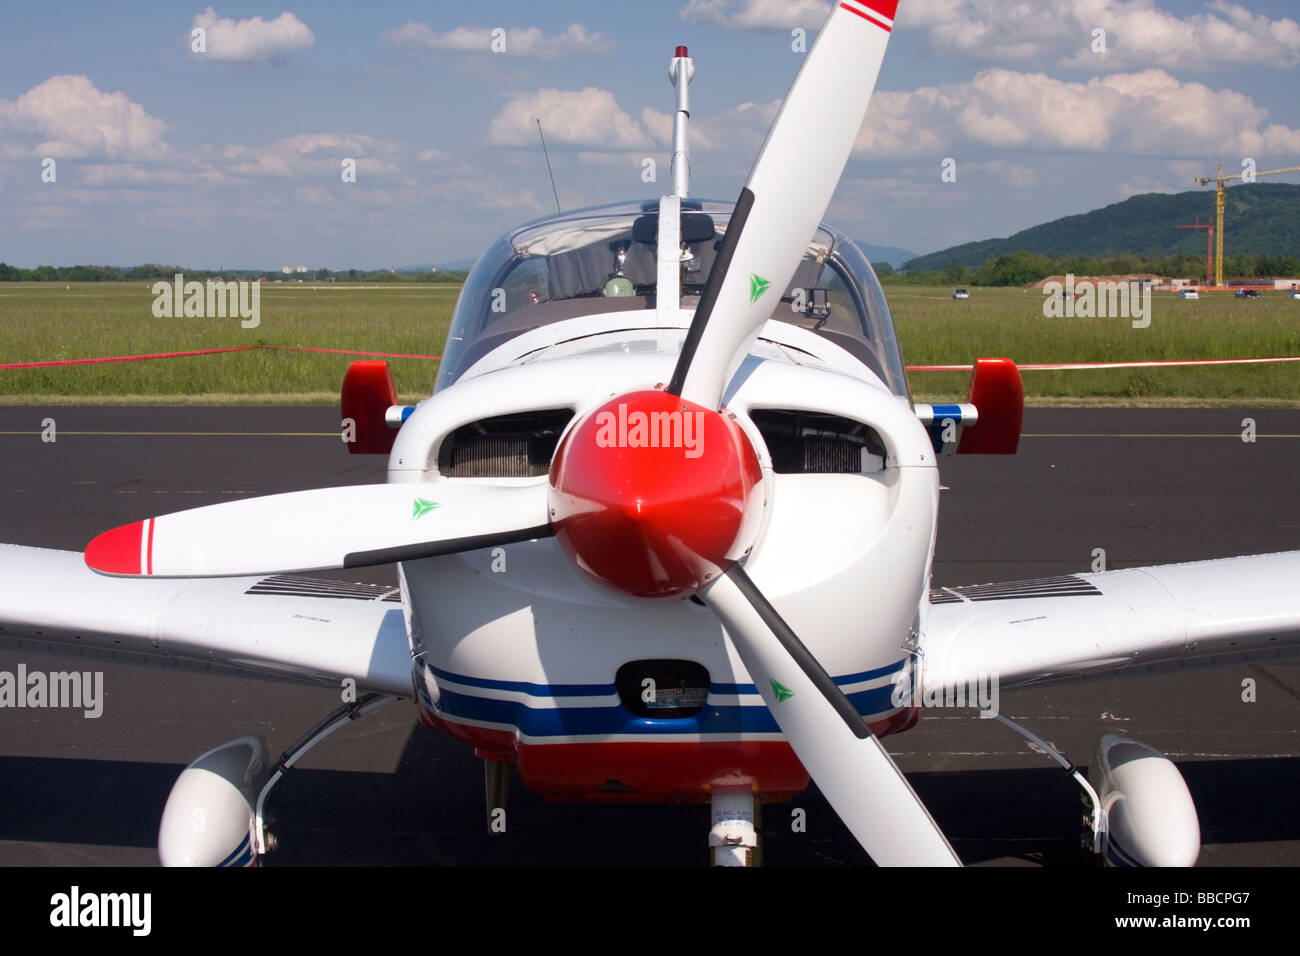 Front view of the light propeller plane Zlin. - Stock Image